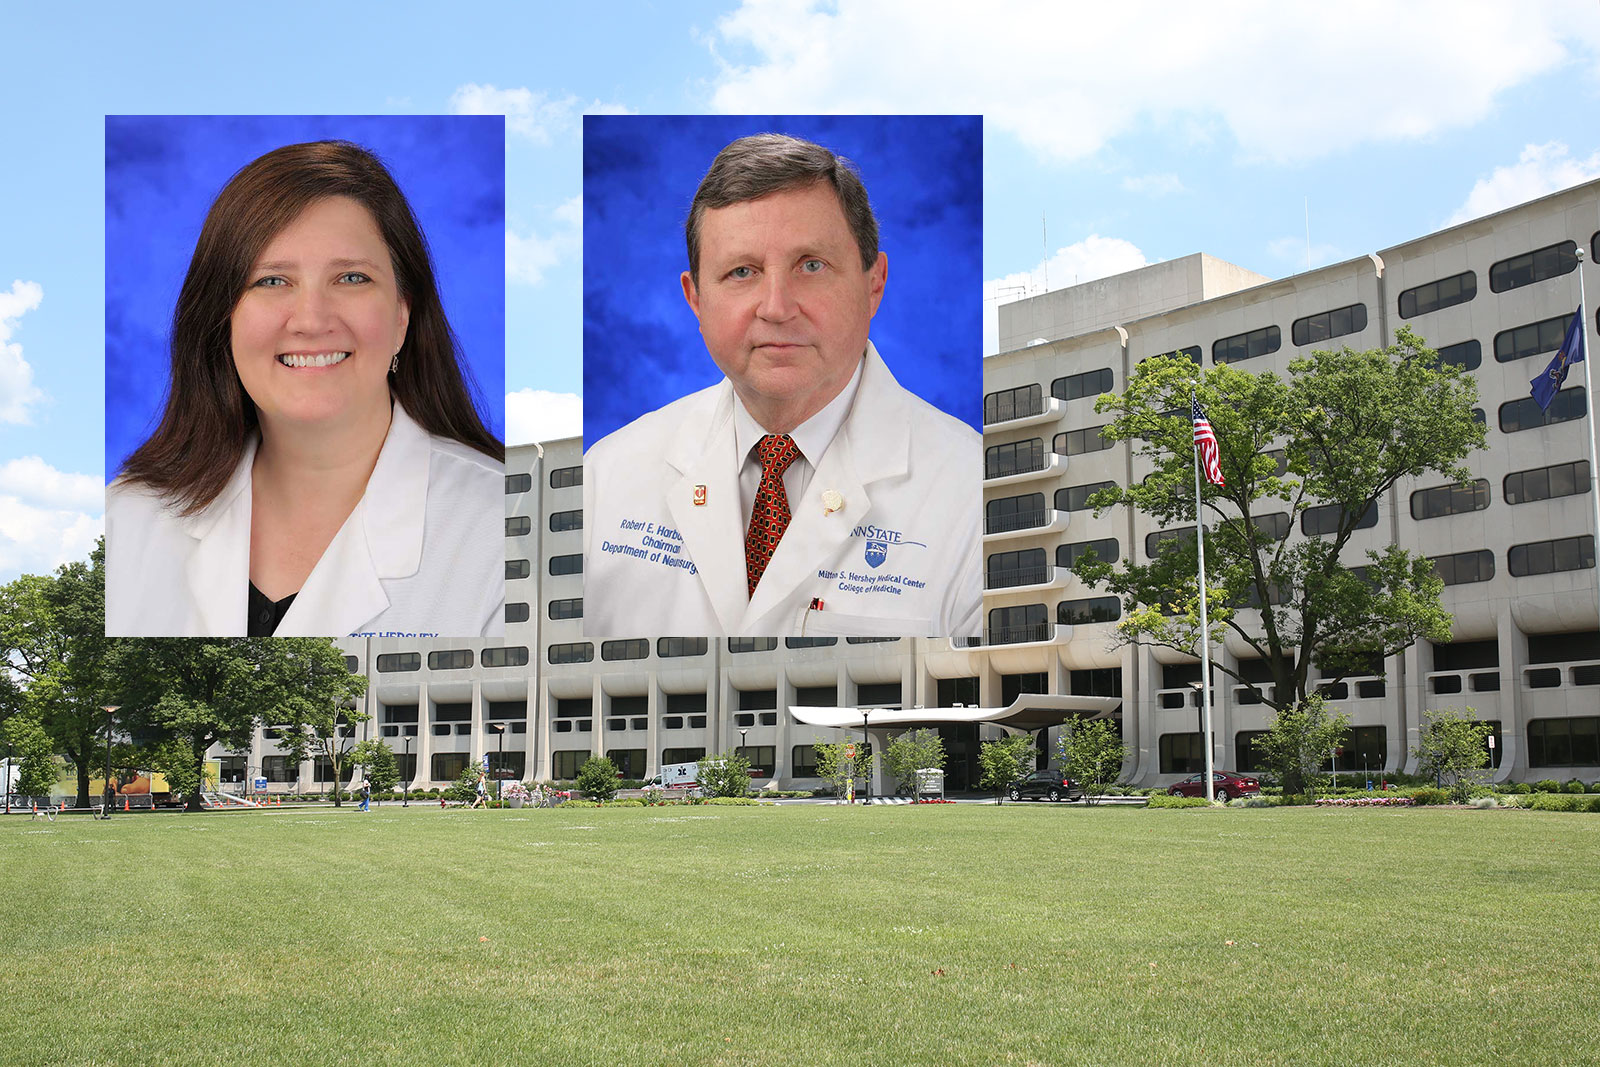 Dr. Shelly D. Timmons, left, and Dr. Robert Harbaugh, right, were recently honored by the American Association of Neurological Surgeons. Head-and-shoulders photos of the two physicians, wearing medical coats, are superimposed on an image of Penn State College of Medicine's Crescent building in Hershey, PA.